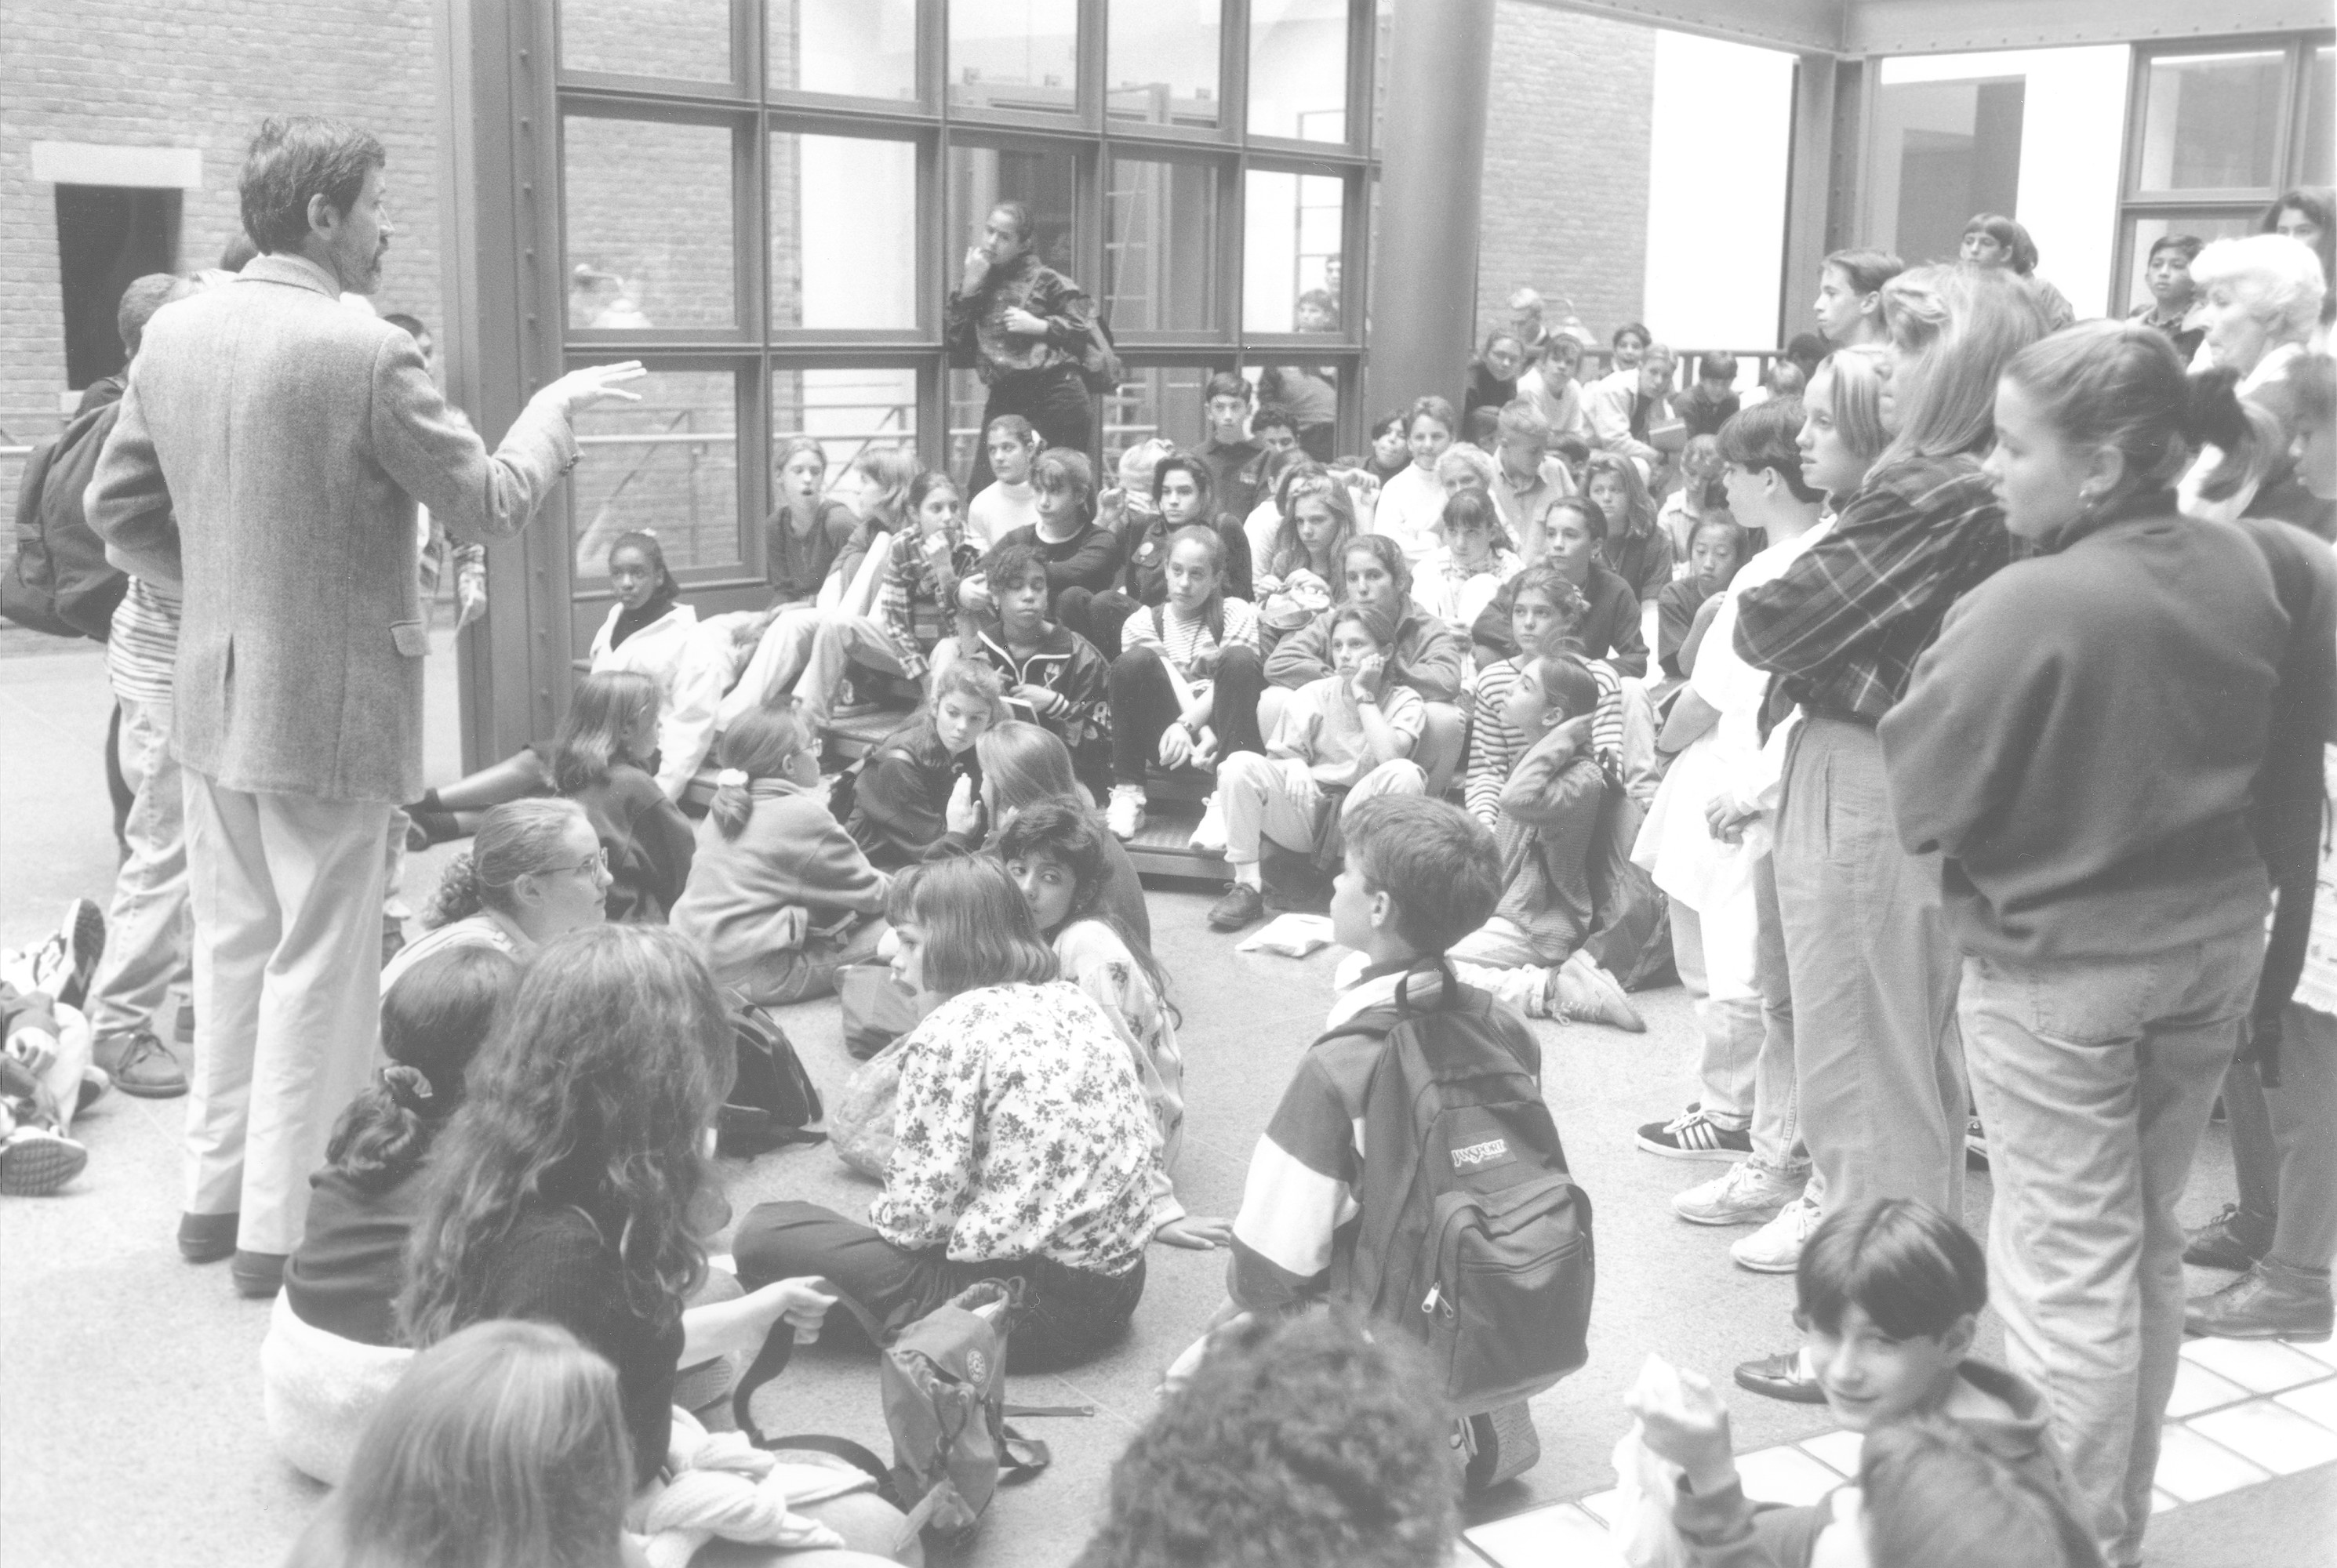 A teacher lectures to a visiting school group in the Hall of Witness at the U.S. Holocaust Memorial Museum.